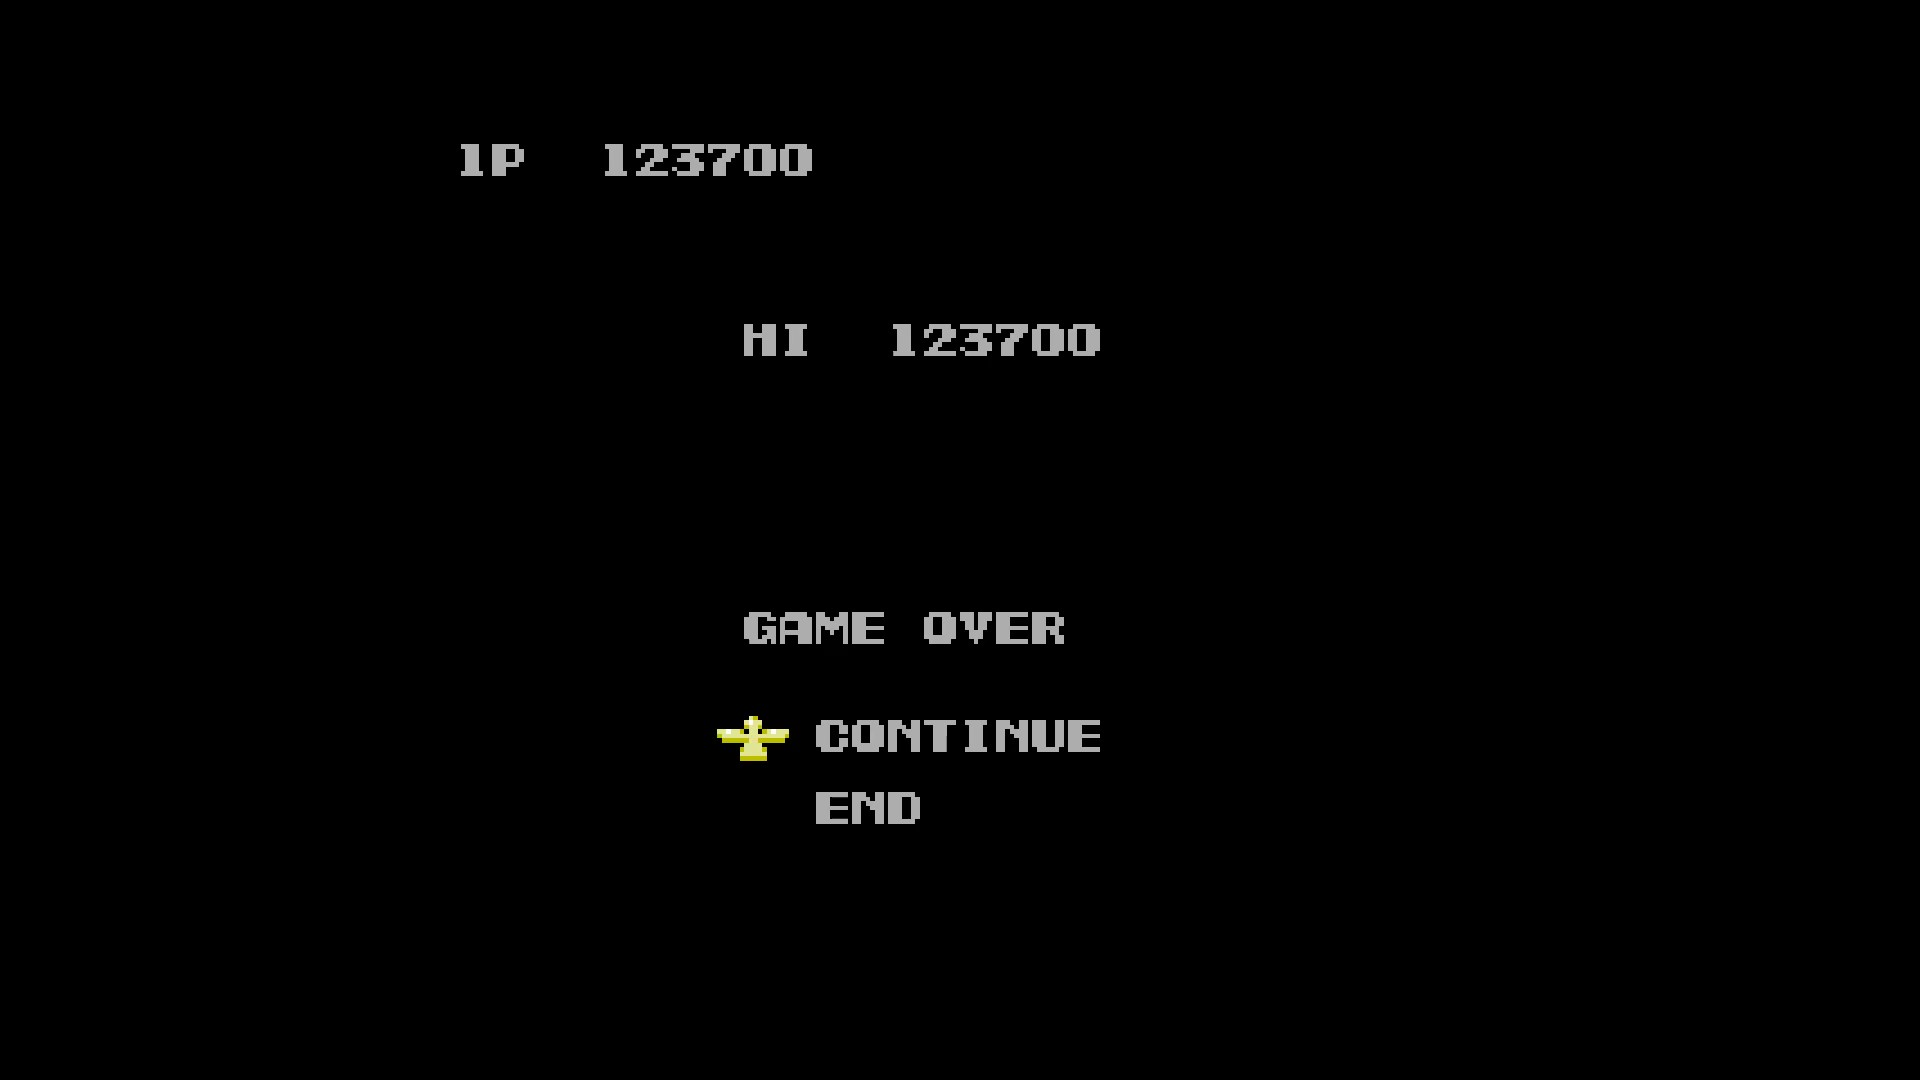 Contra 123,700 points